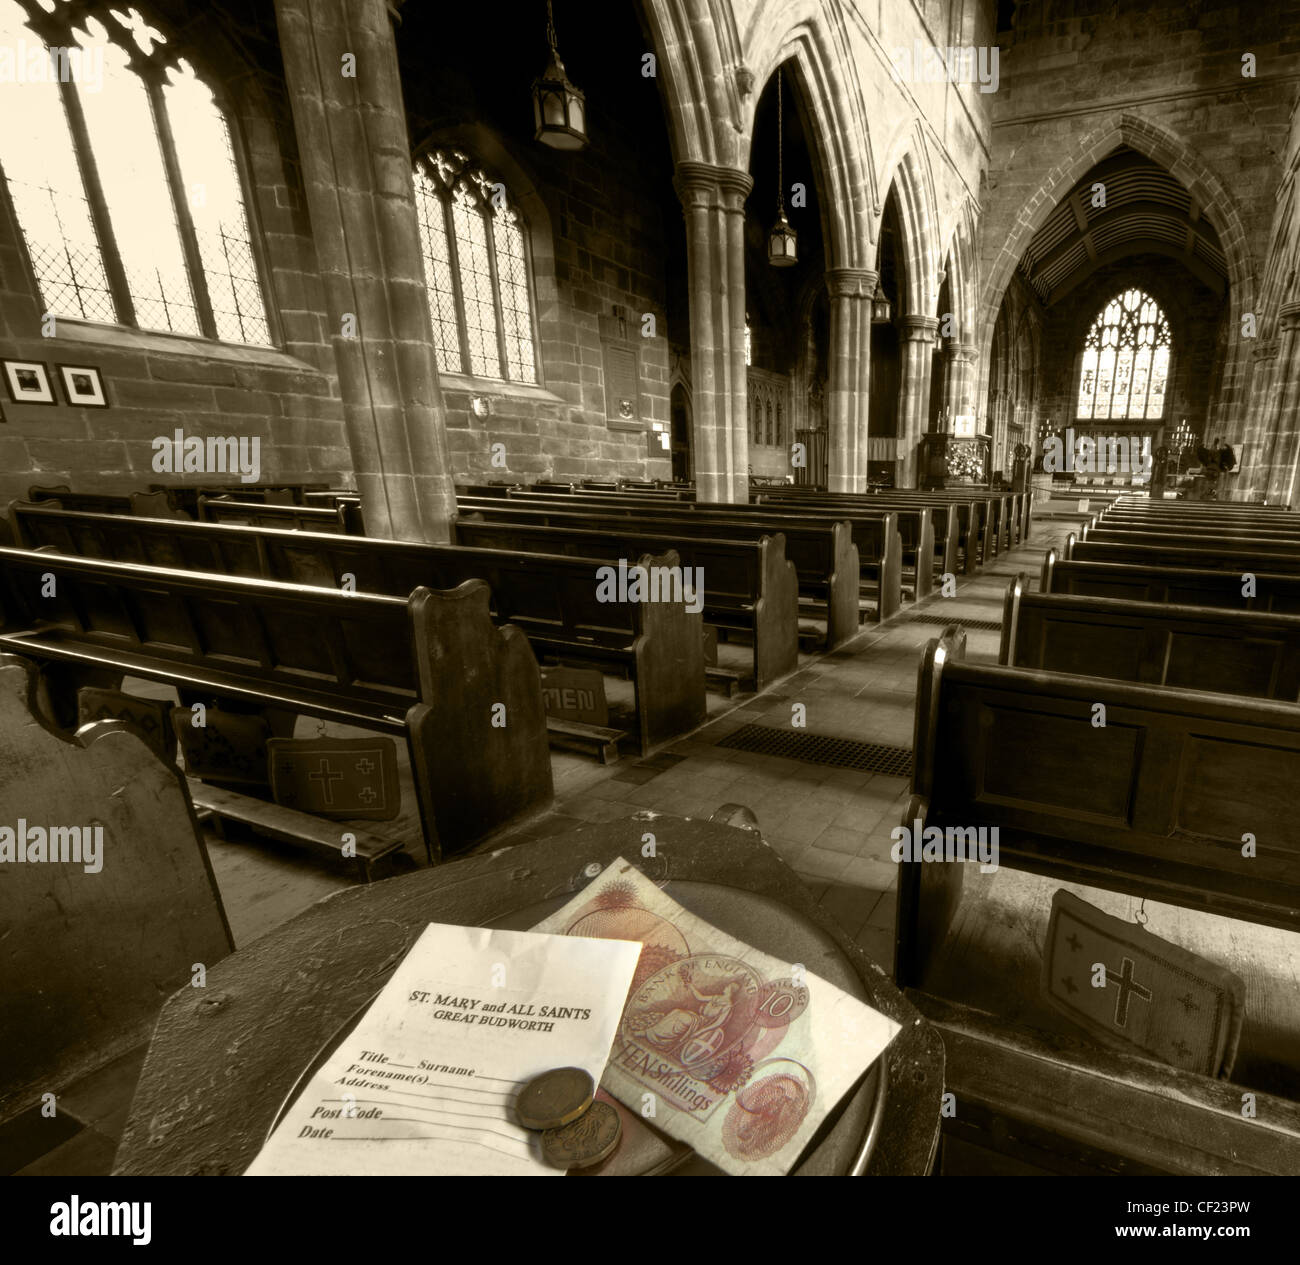 Collection,plate,donation,Great,Budworth,St,Marys,Church,Northwich Cheshire,England,UK,gotonysmith,religion,Church,of,England,CofE,inside,interior,pews,roof,arches,monumant,10,ten,shilling,note,3d,bit,threepenny,three,penny,bit,old,british,great,GB,Brittania,A,view,from,the,collection,plate,St,Mary,and,All,Saints,church,Great Budworth,Northwich,Cheshire.,gotonysmith,thrippnce,thruppnce,threppnce,thrippny,bit,thruppny,bit,by,grannies,and,others,alike.,A,church,in,a,delightful,setting,of,thatched,cottages,and,the,George,and,Dragon,pub.,If,you,visit,on,a,sunday,,check,out,the,cakes,and,afternoon,teas,served,by,the,church,helpers,(summer,only).,Parisioners,use,the,collection,envelope,to,leave,an,abbonymous,donation.,These,days,they,can,gift,aid,it,etc,,this,was,not,the,case,in,the,1960s,when,a,ten,bob,not,would,be,a,quite,vast,sum,and,six,pence,(from,two,three,penny,bits),maybe,more,the,norm,to,be,dropped,into,the,plate.,The,nickel,brass,threepence,was,used,between,1937–1970.,A,strange,coin,sometimes,called,,,,,or,,